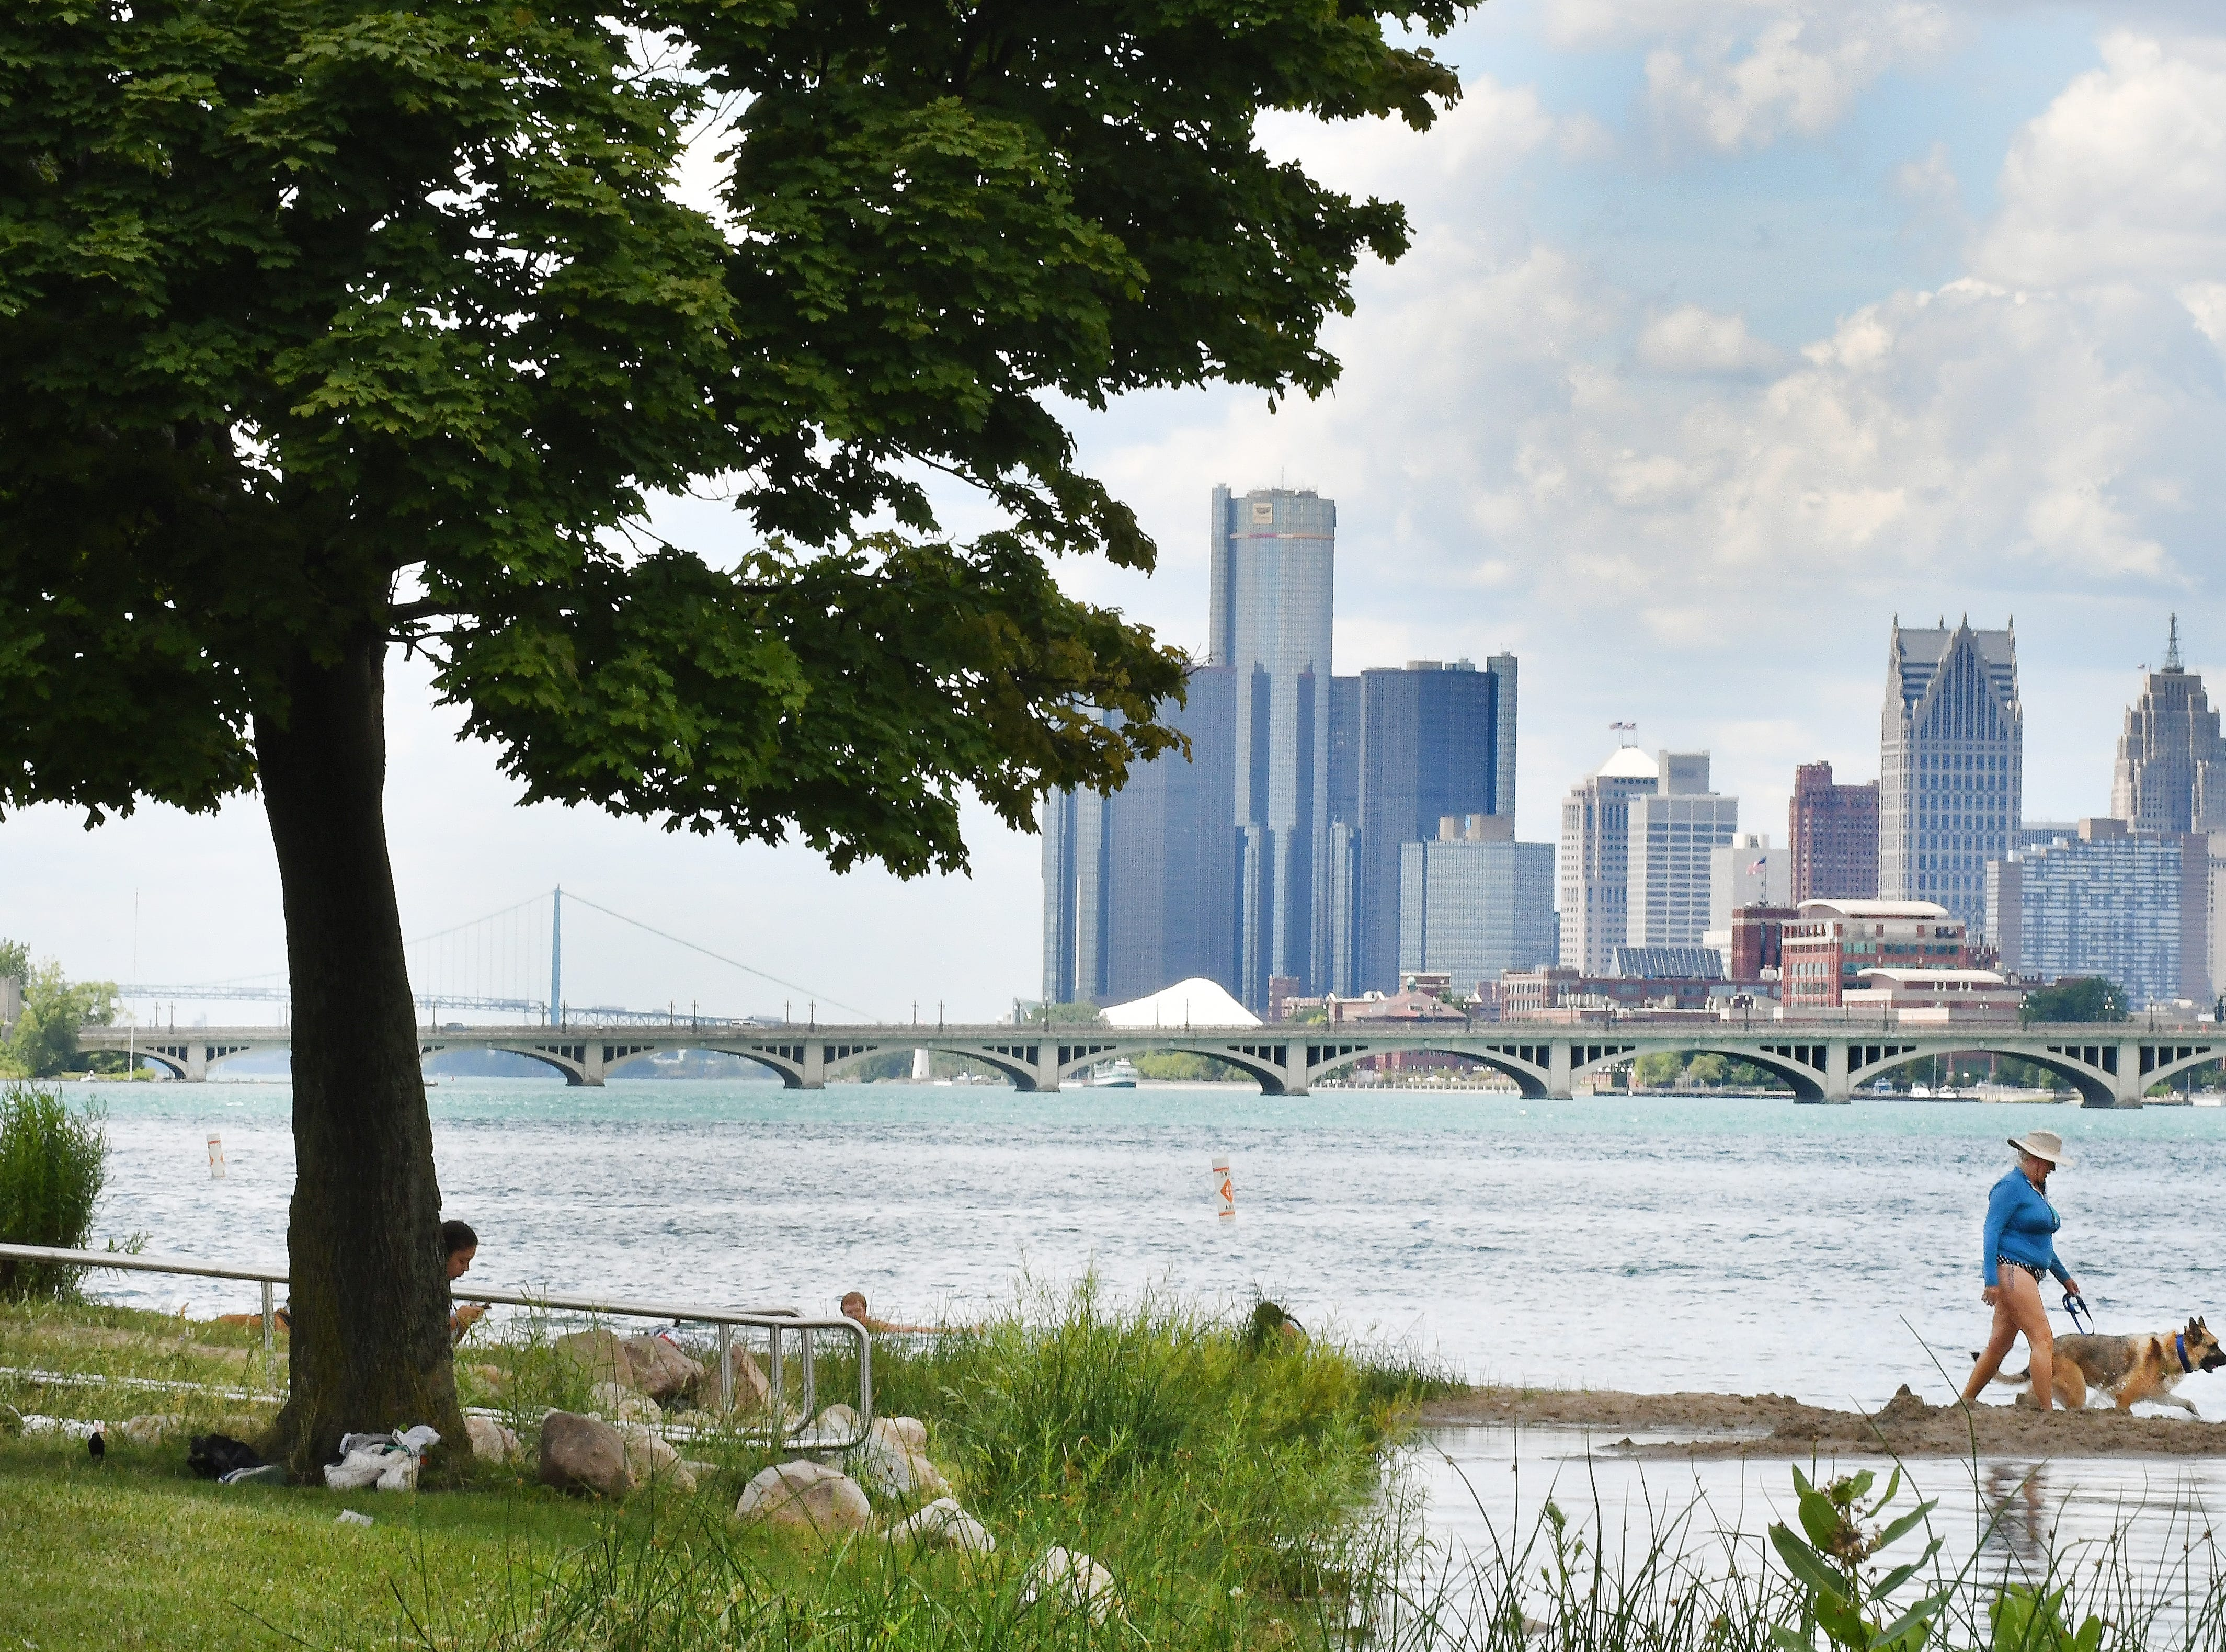 Michigan-born Laura Che, visiting from California, enjoys the cool water with her dog Stella at Belle Isle, with the Detroit skyline in the background, on July 17, 2018.